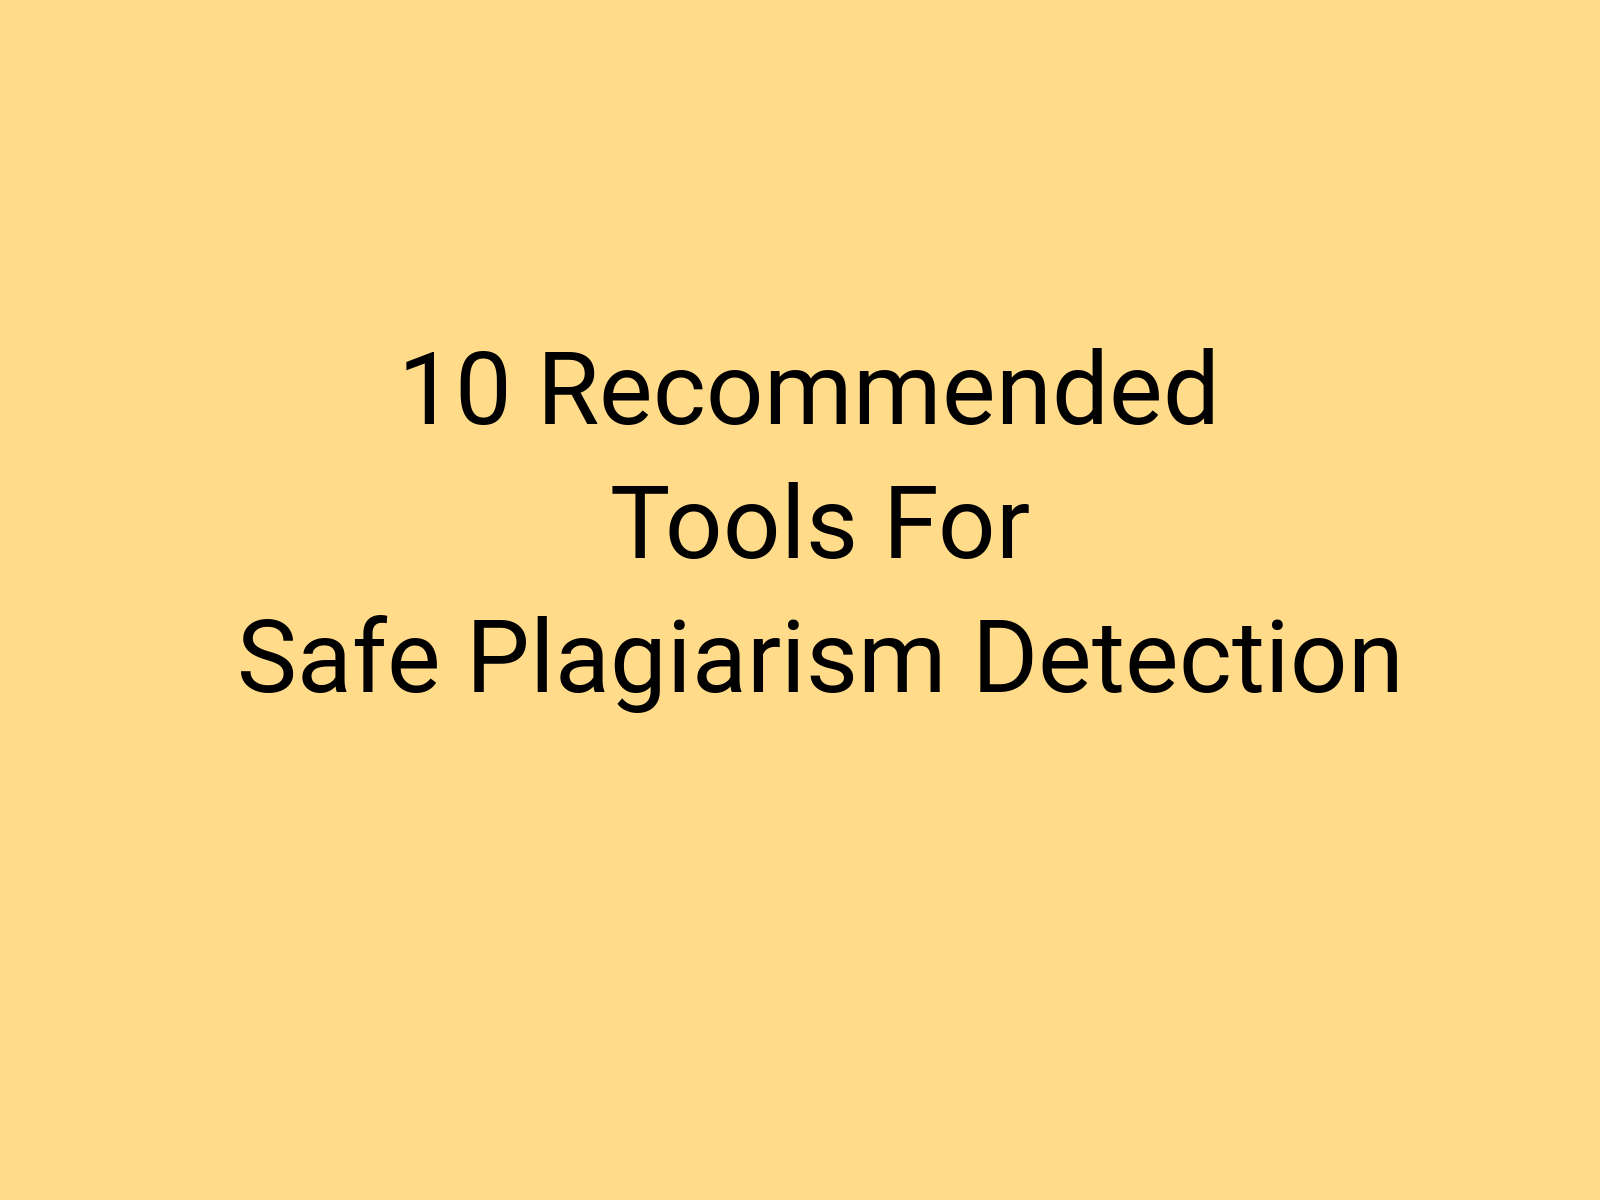 019 Research Paper Plagiarism Detection Software Online Checker For Papers Stunning Free Students Grammarly With Percentage Full